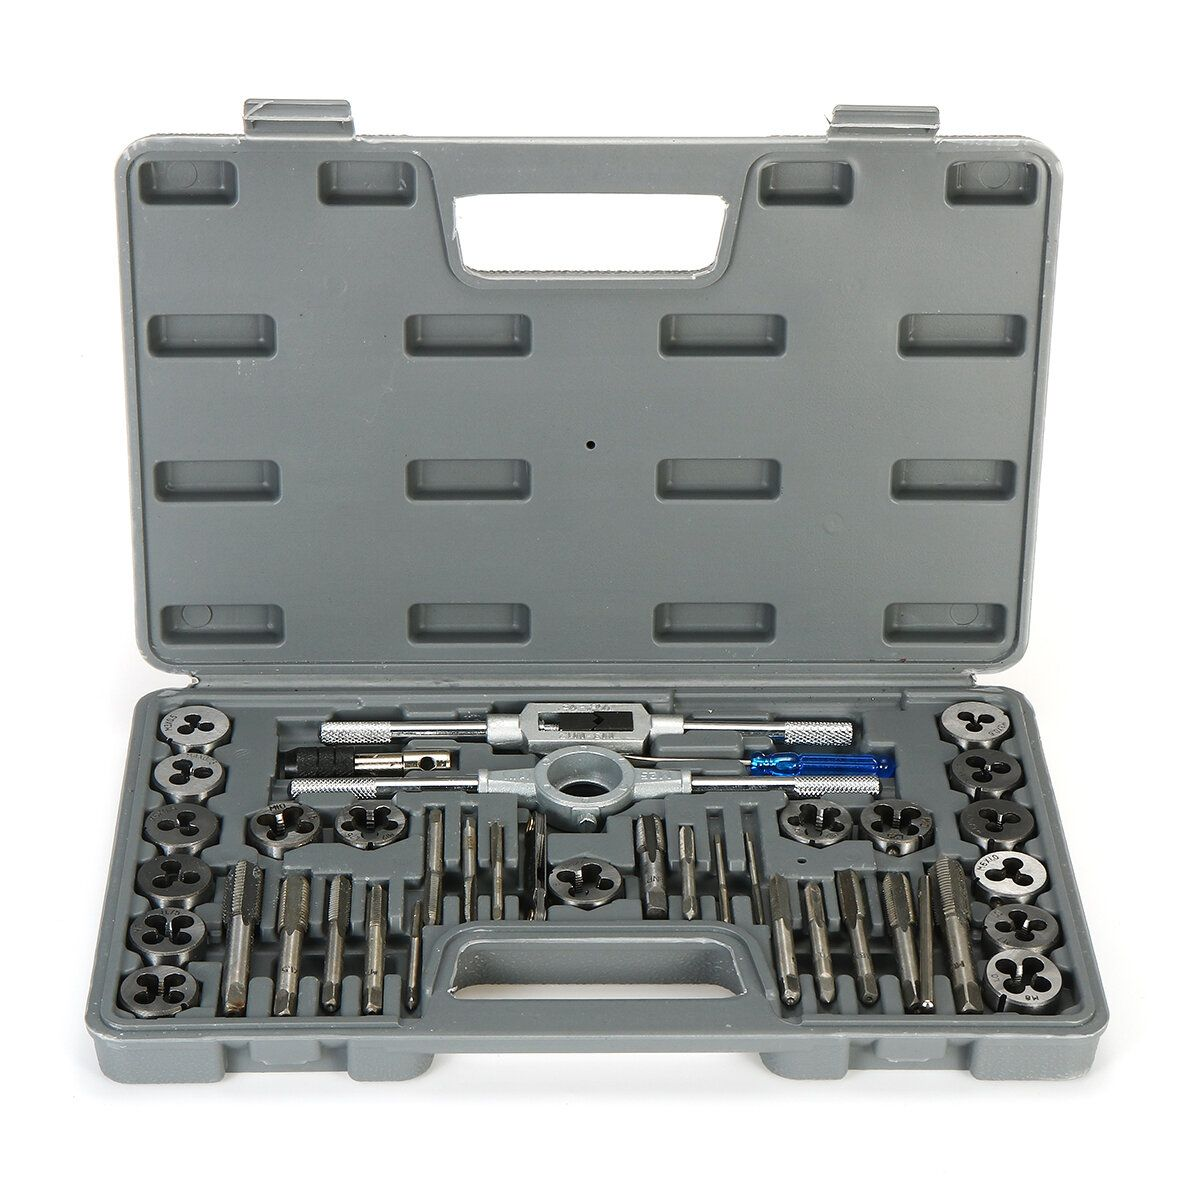 40Pcs M3 M12 Screw Nut Tap Die Set with Wrenches Thread Gauge Hand Tools